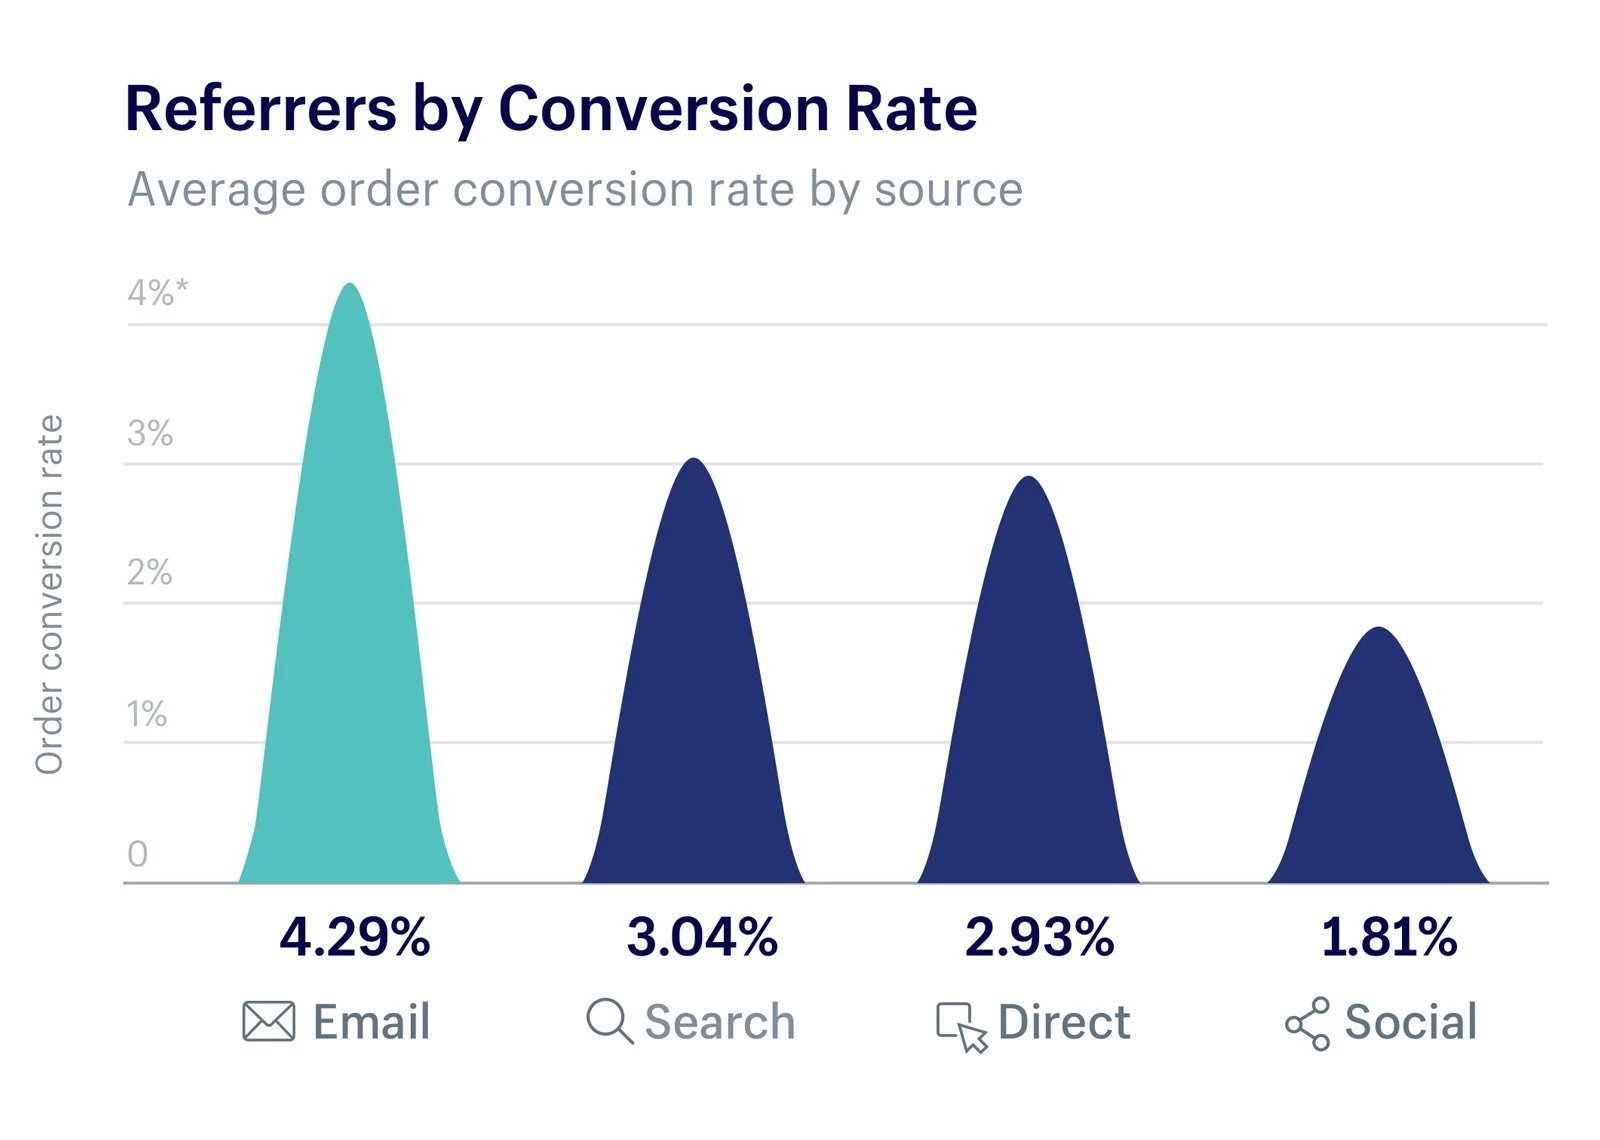 Referrers by conversion rate.